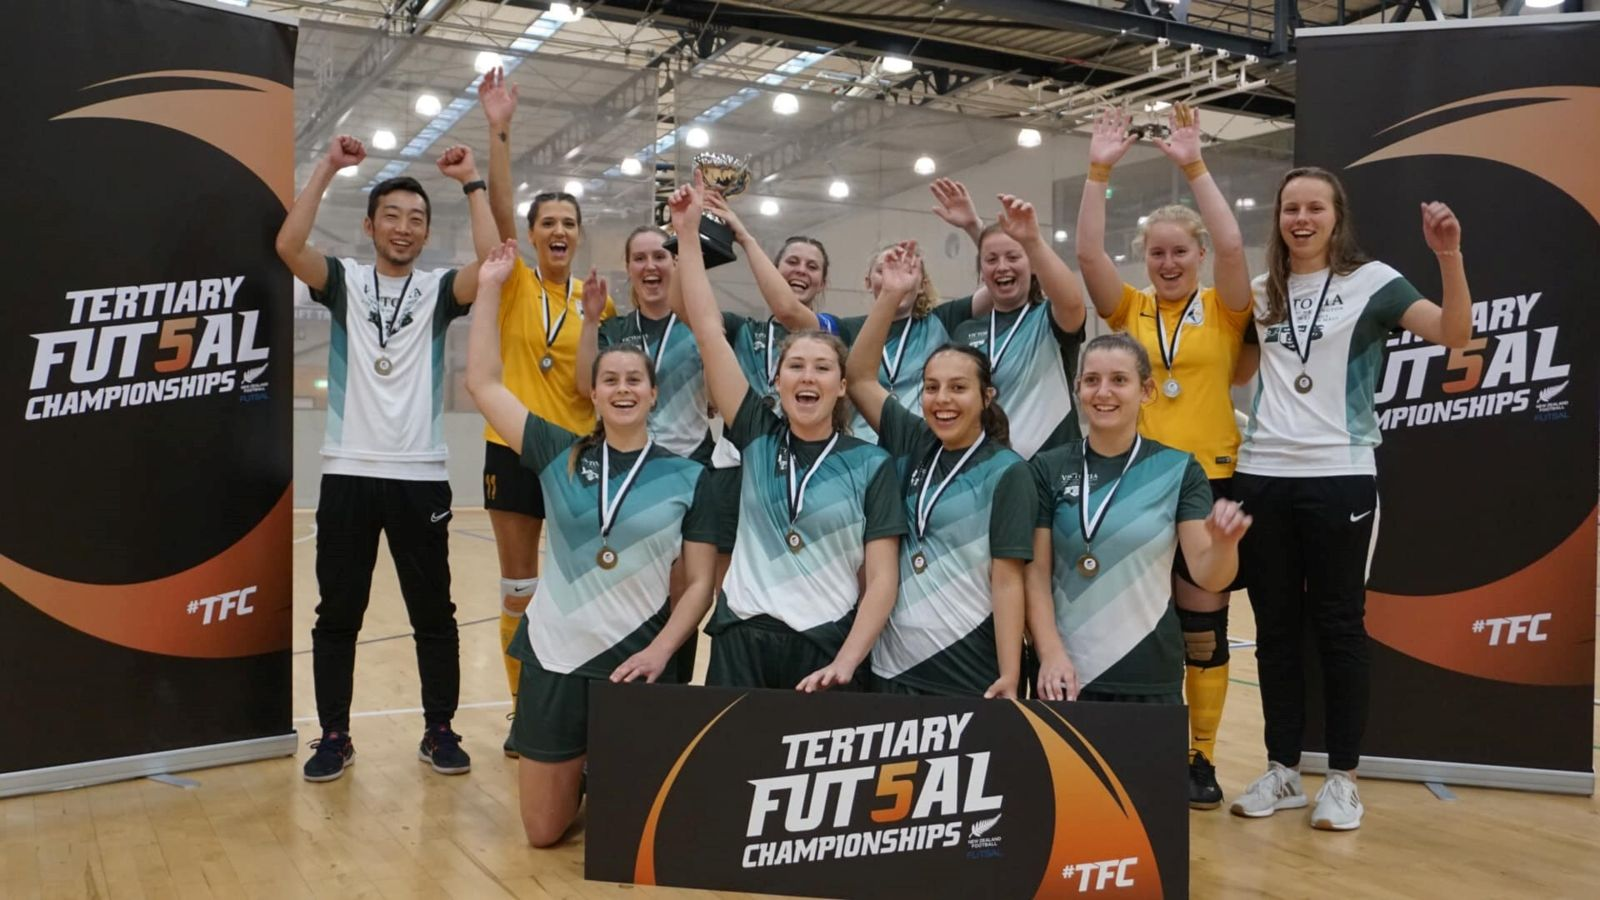 Victoria University of Wellington Women's Futsal team with medals, celebrating winning the 2019 tournament